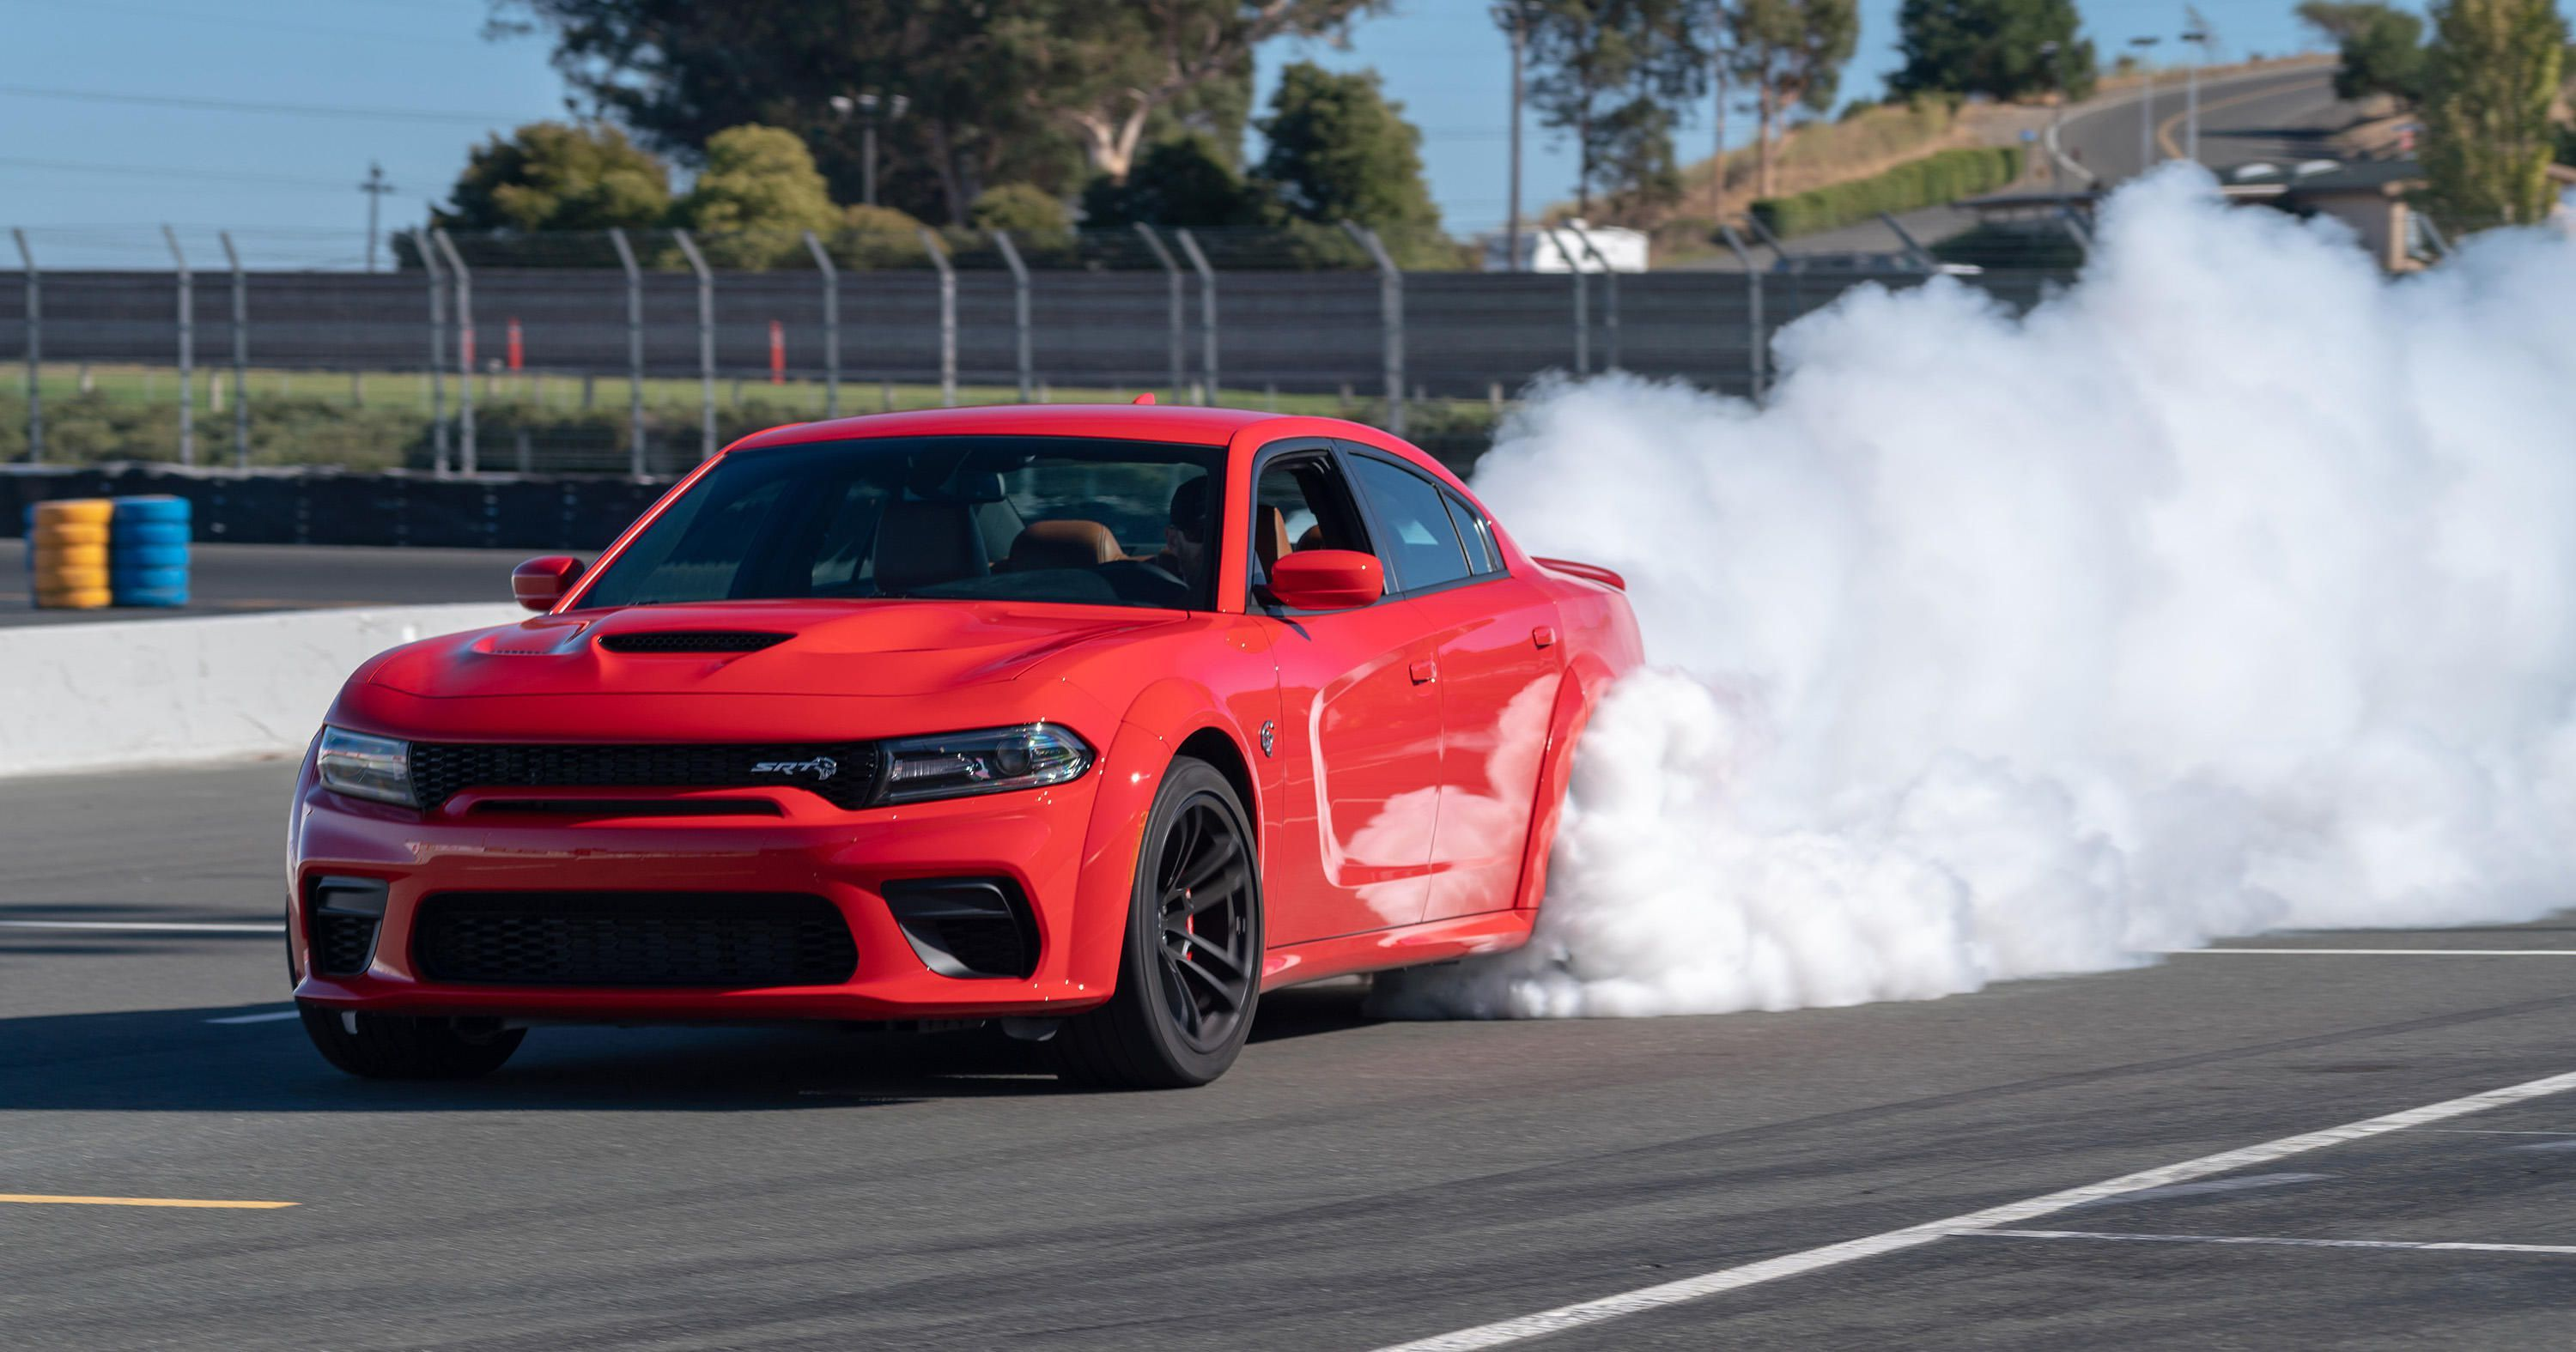 2020 Dodge Charger Widebody First Drive Review Horsepower That Handles Dodge Charger Hellcat Dodge Charger Srt Charger Srt